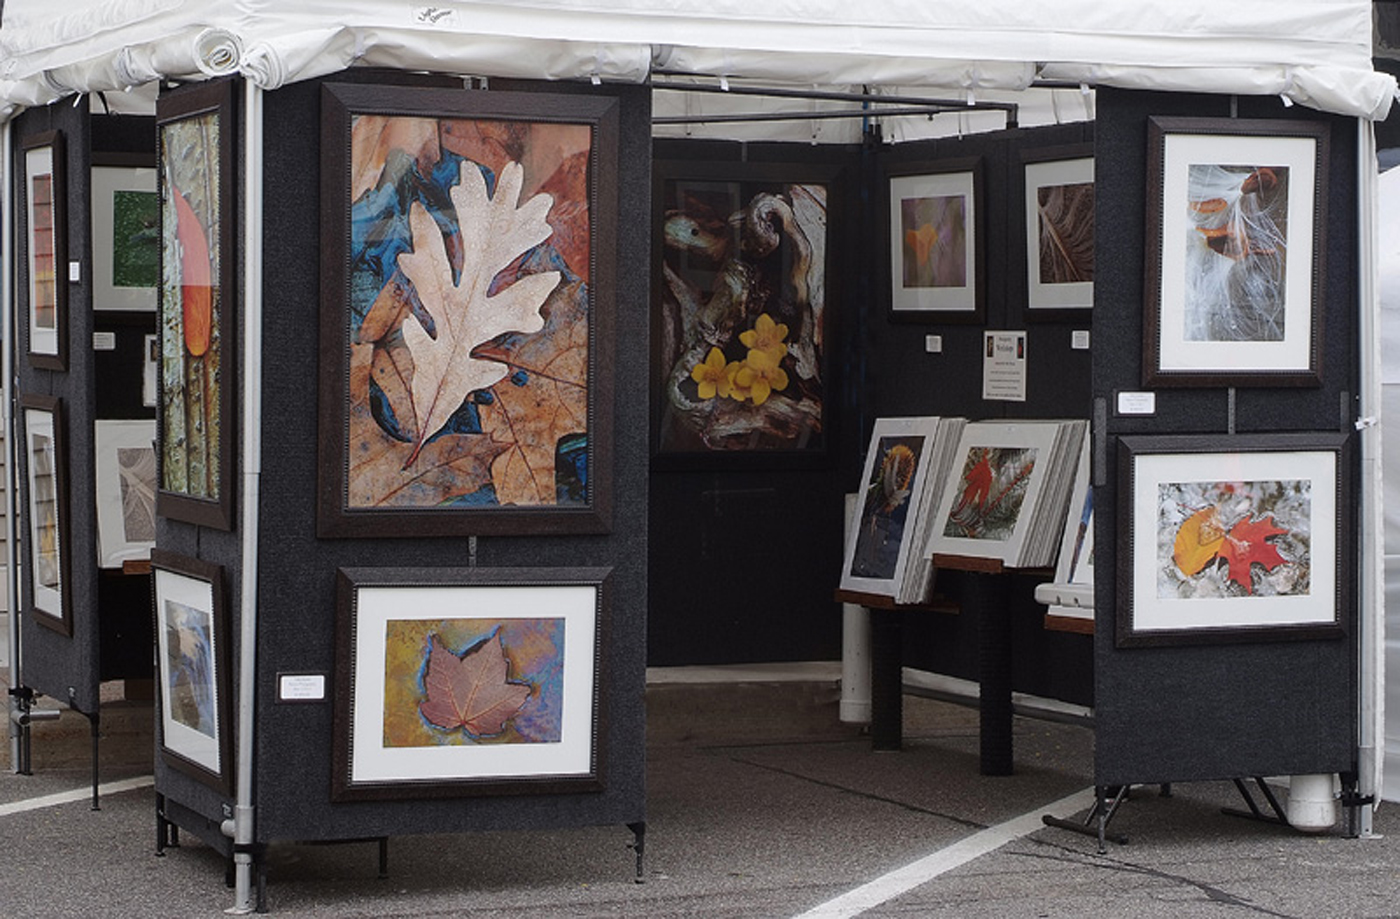 Exhibition Booth For Sale : Kalamazoo garage sale art fair mike moats